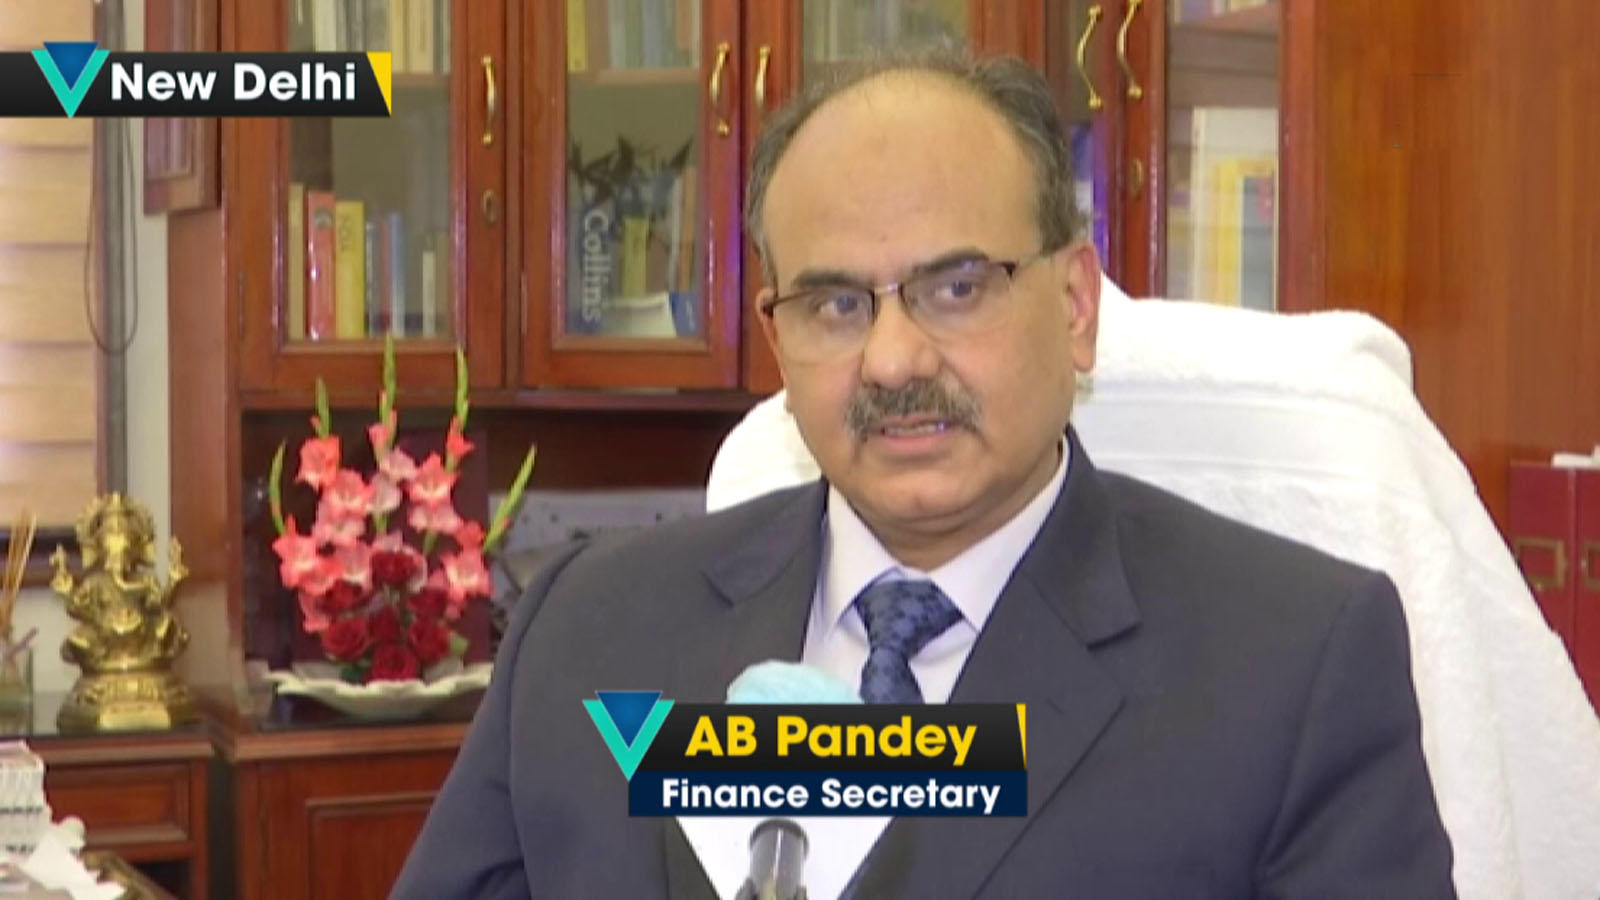 record-high-gst-collection-due-to-reforms-at-system-level-finance-secretary